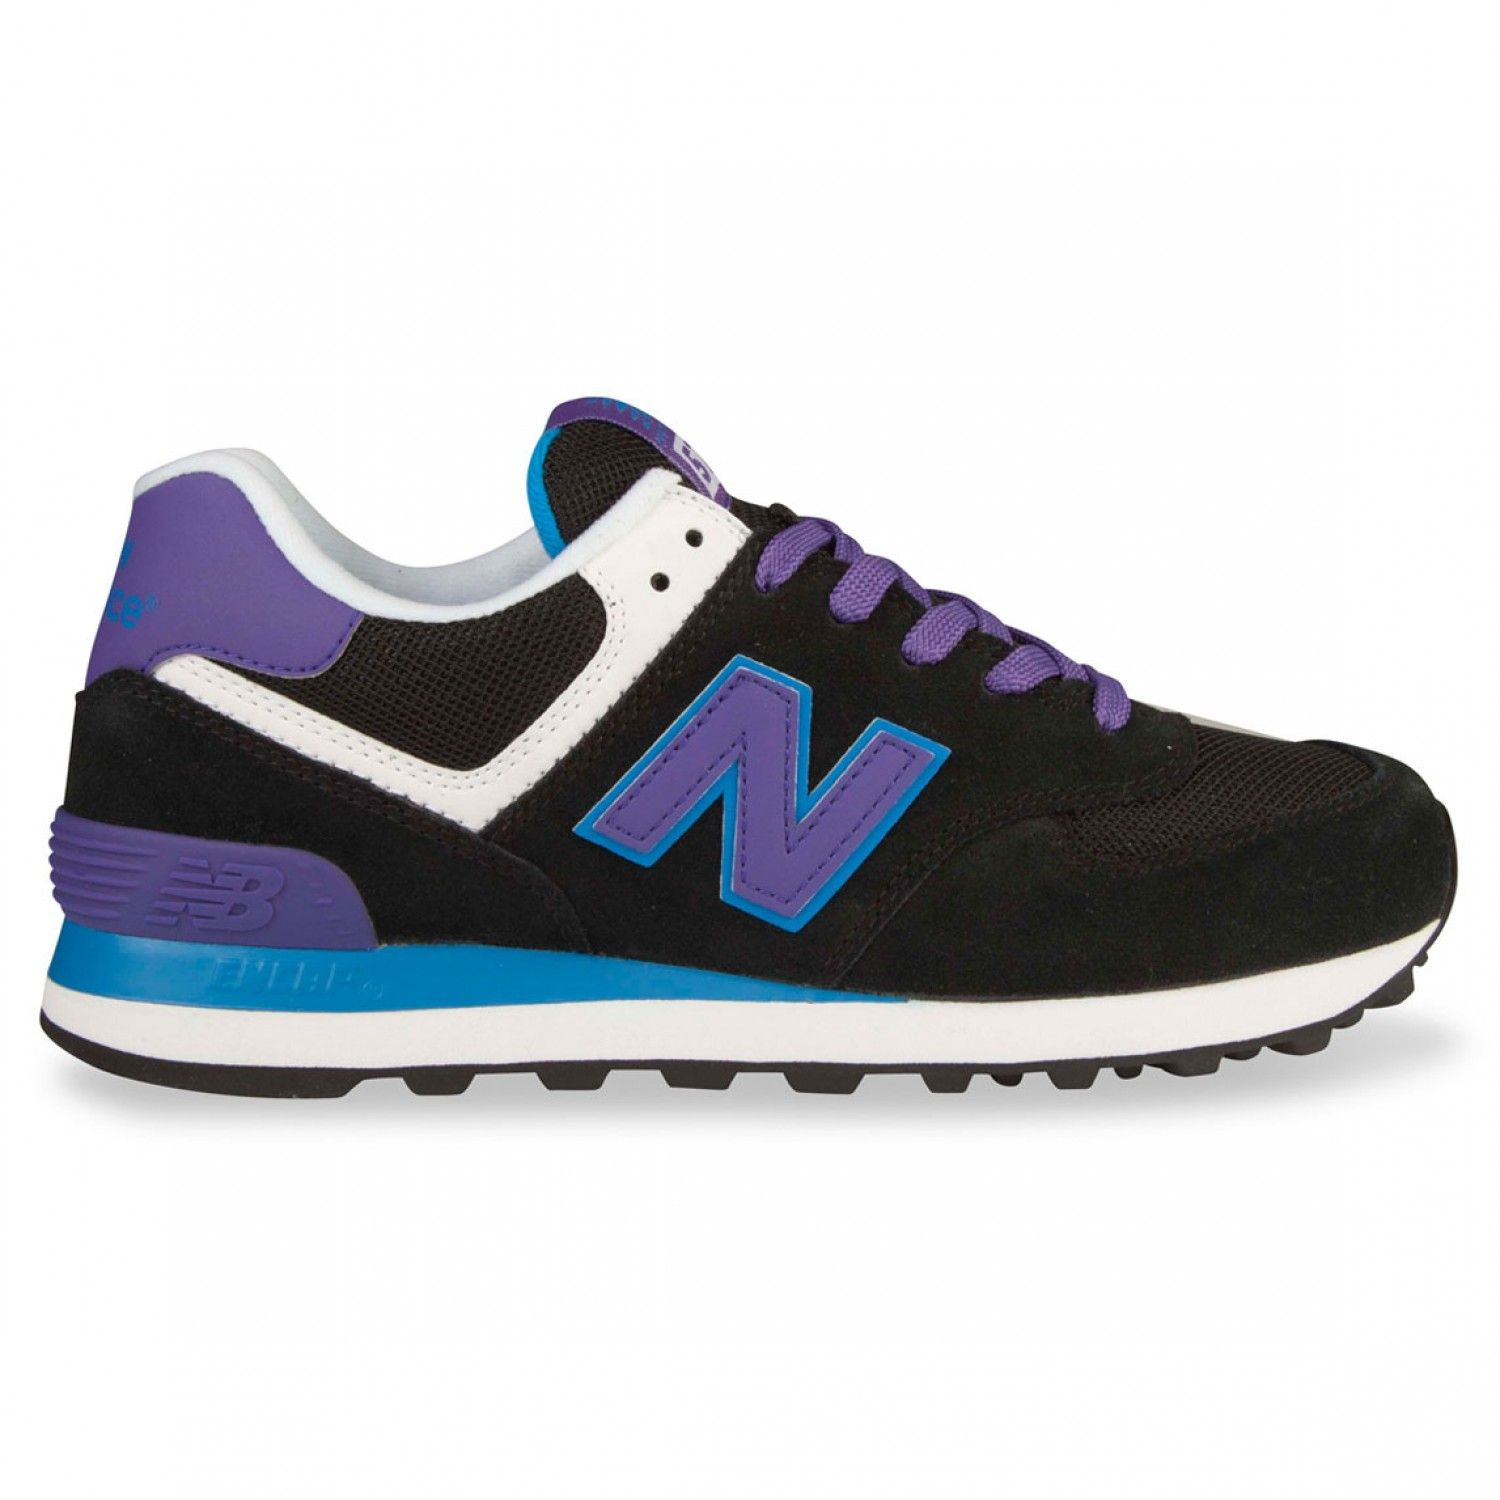 new balance 574 series navy blue womens trainers